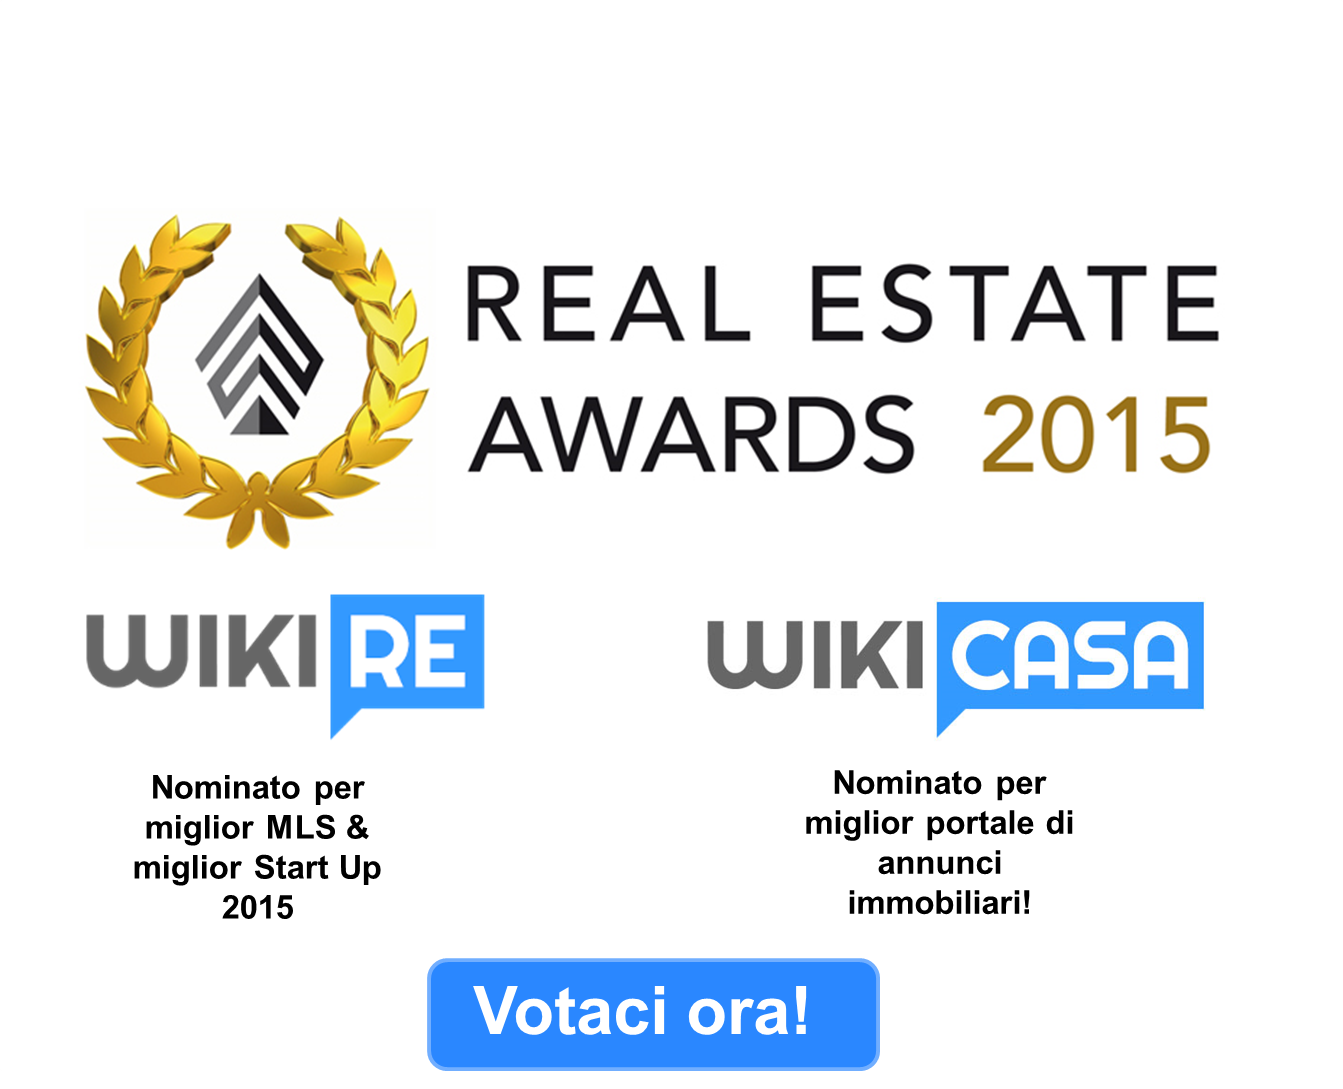 Il Real Estate Awards 2015